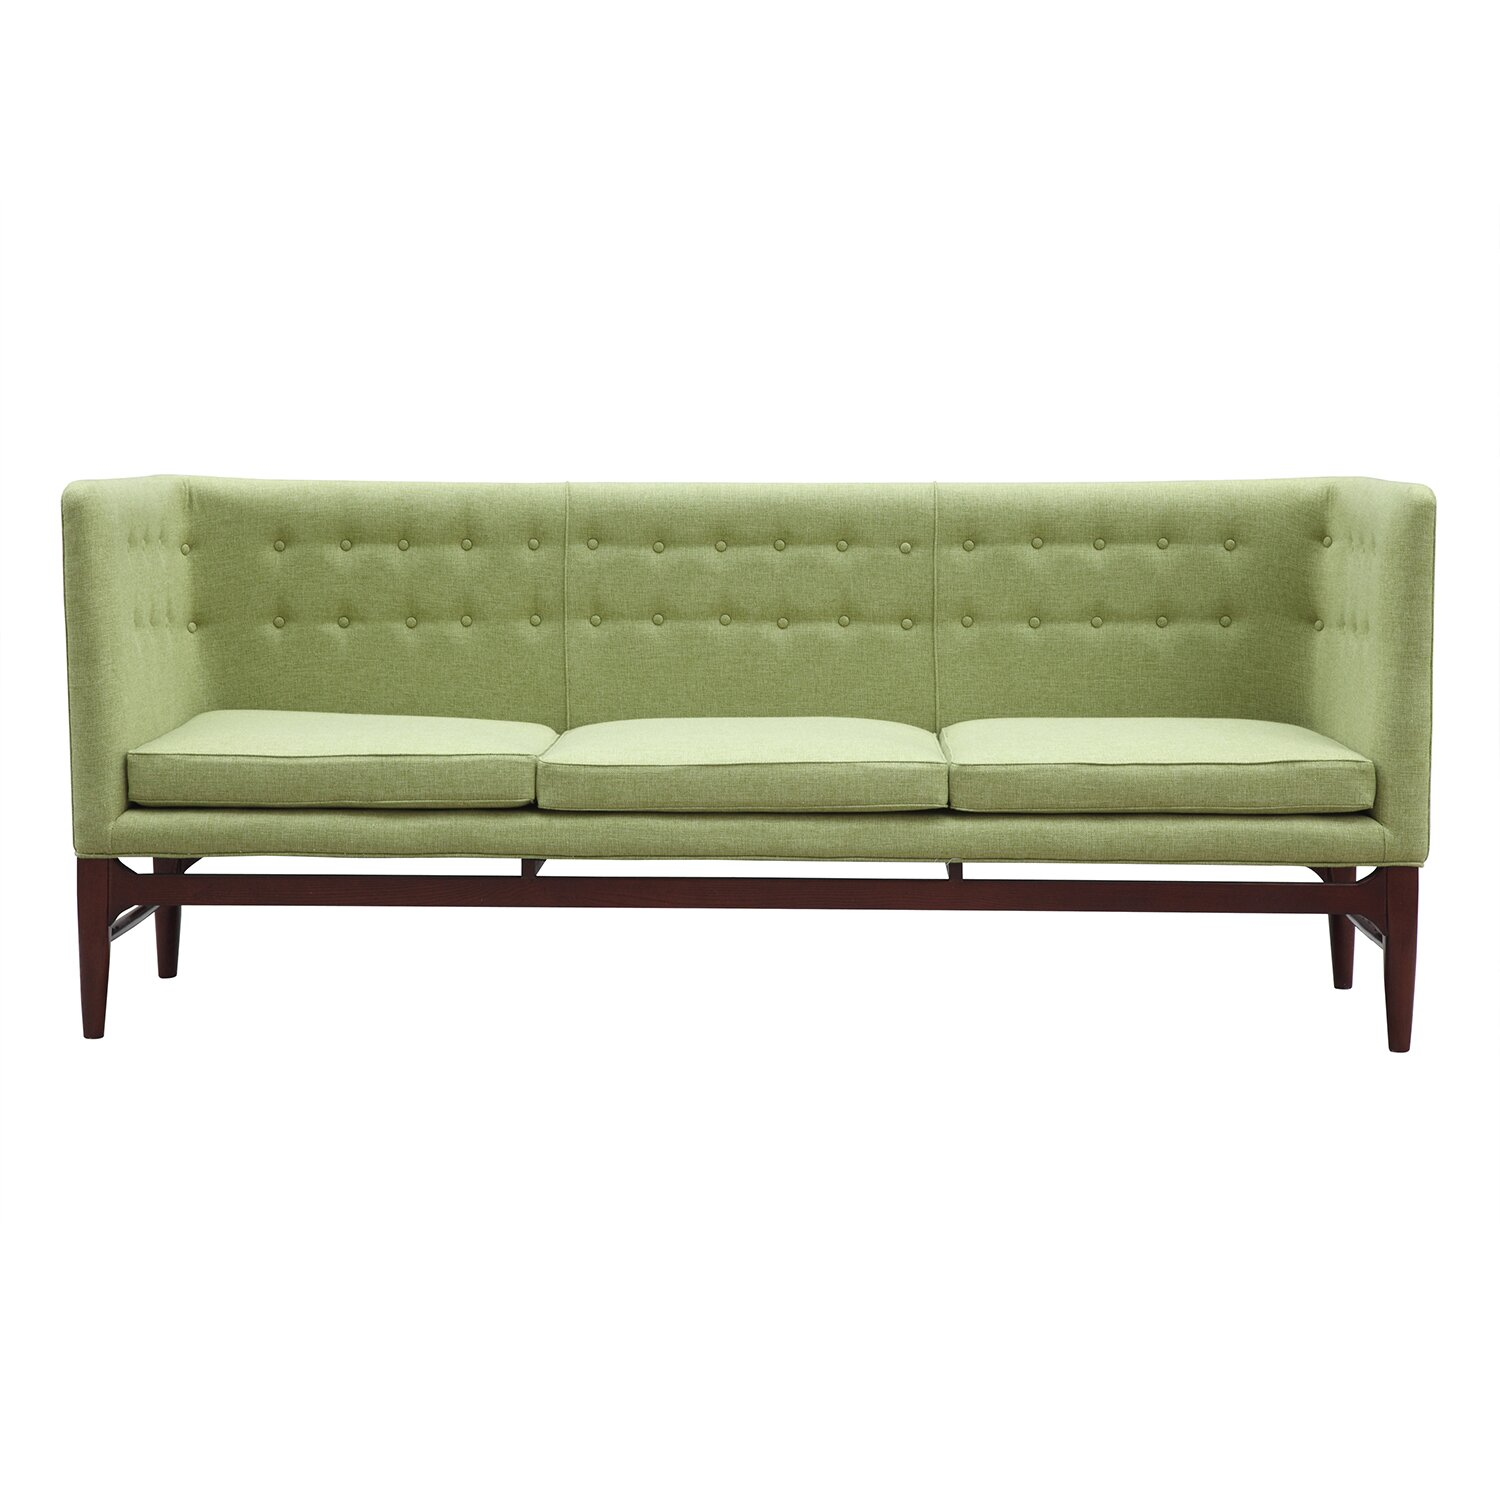 Mayor mid century modern sofa wayfair for Mid century modern sofas